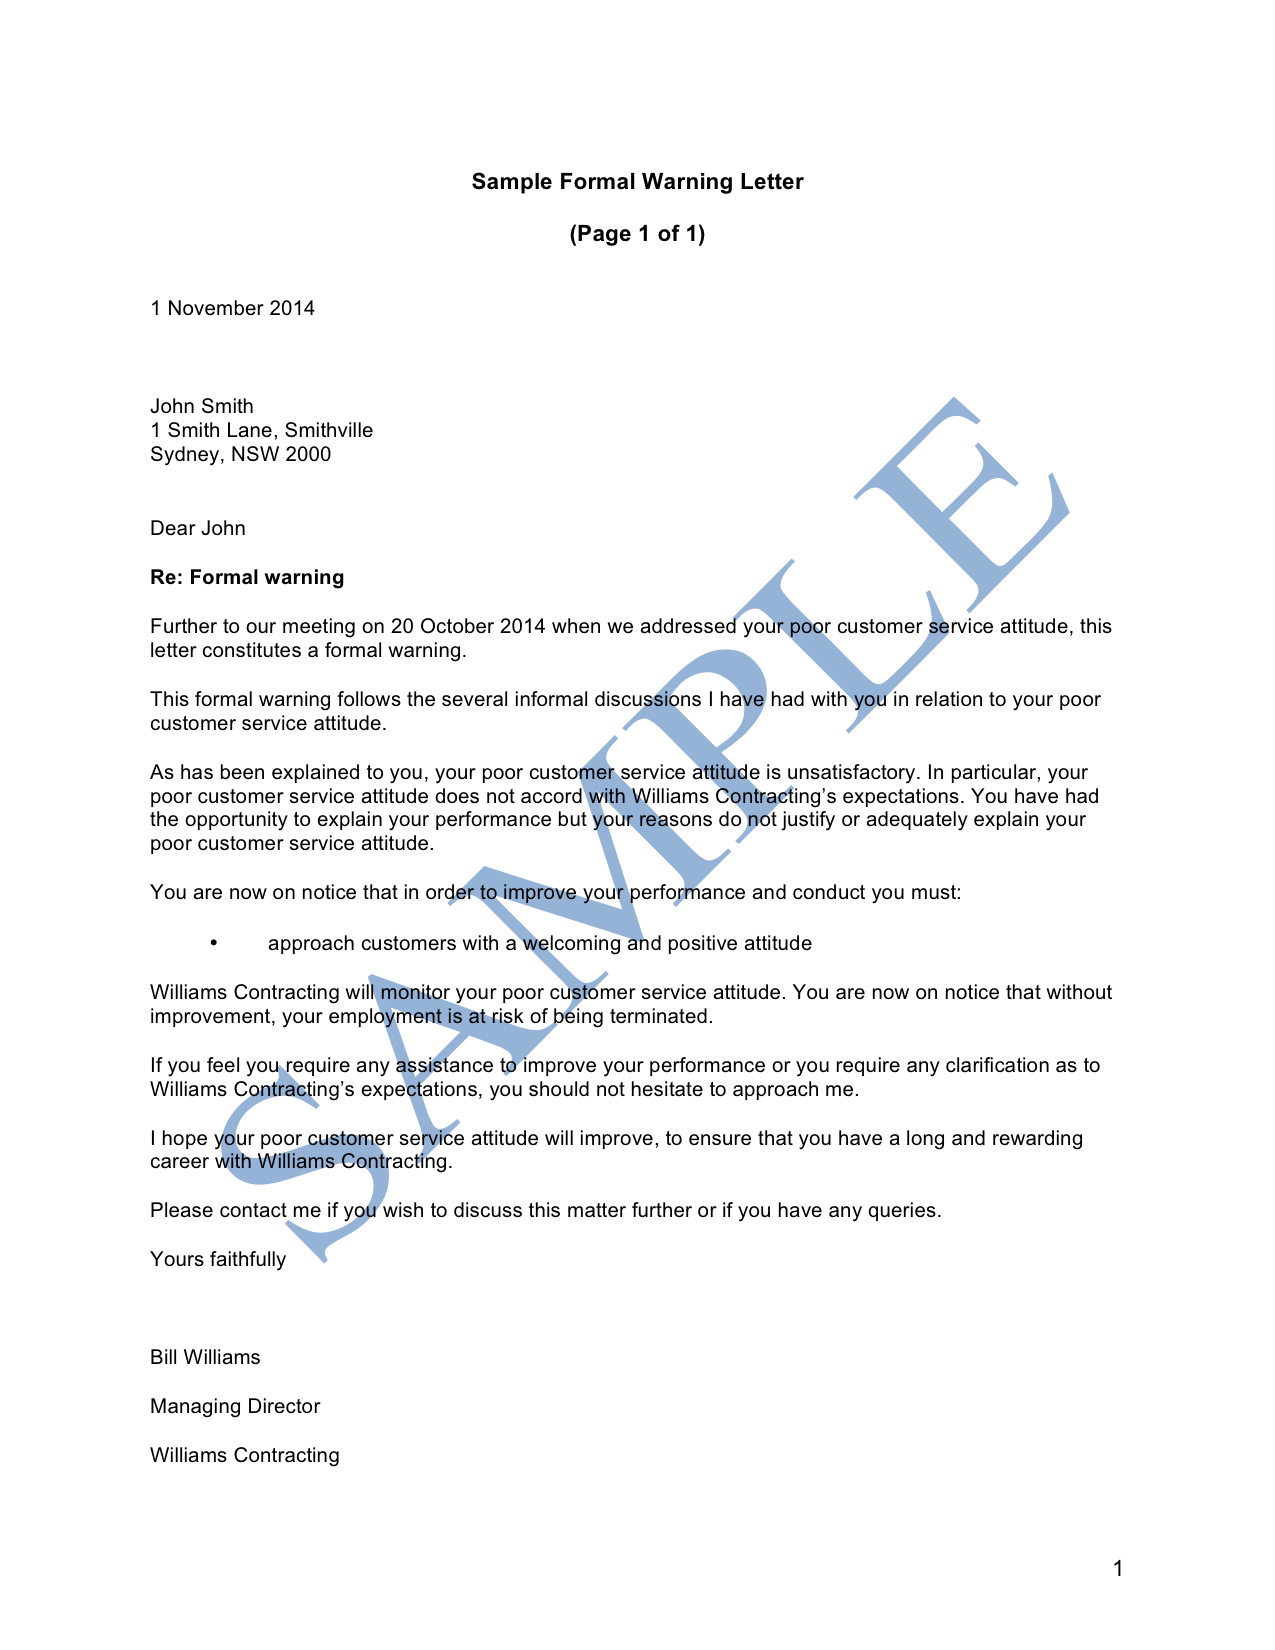 Formal Warning Letter (Unsatisfactory Performance)